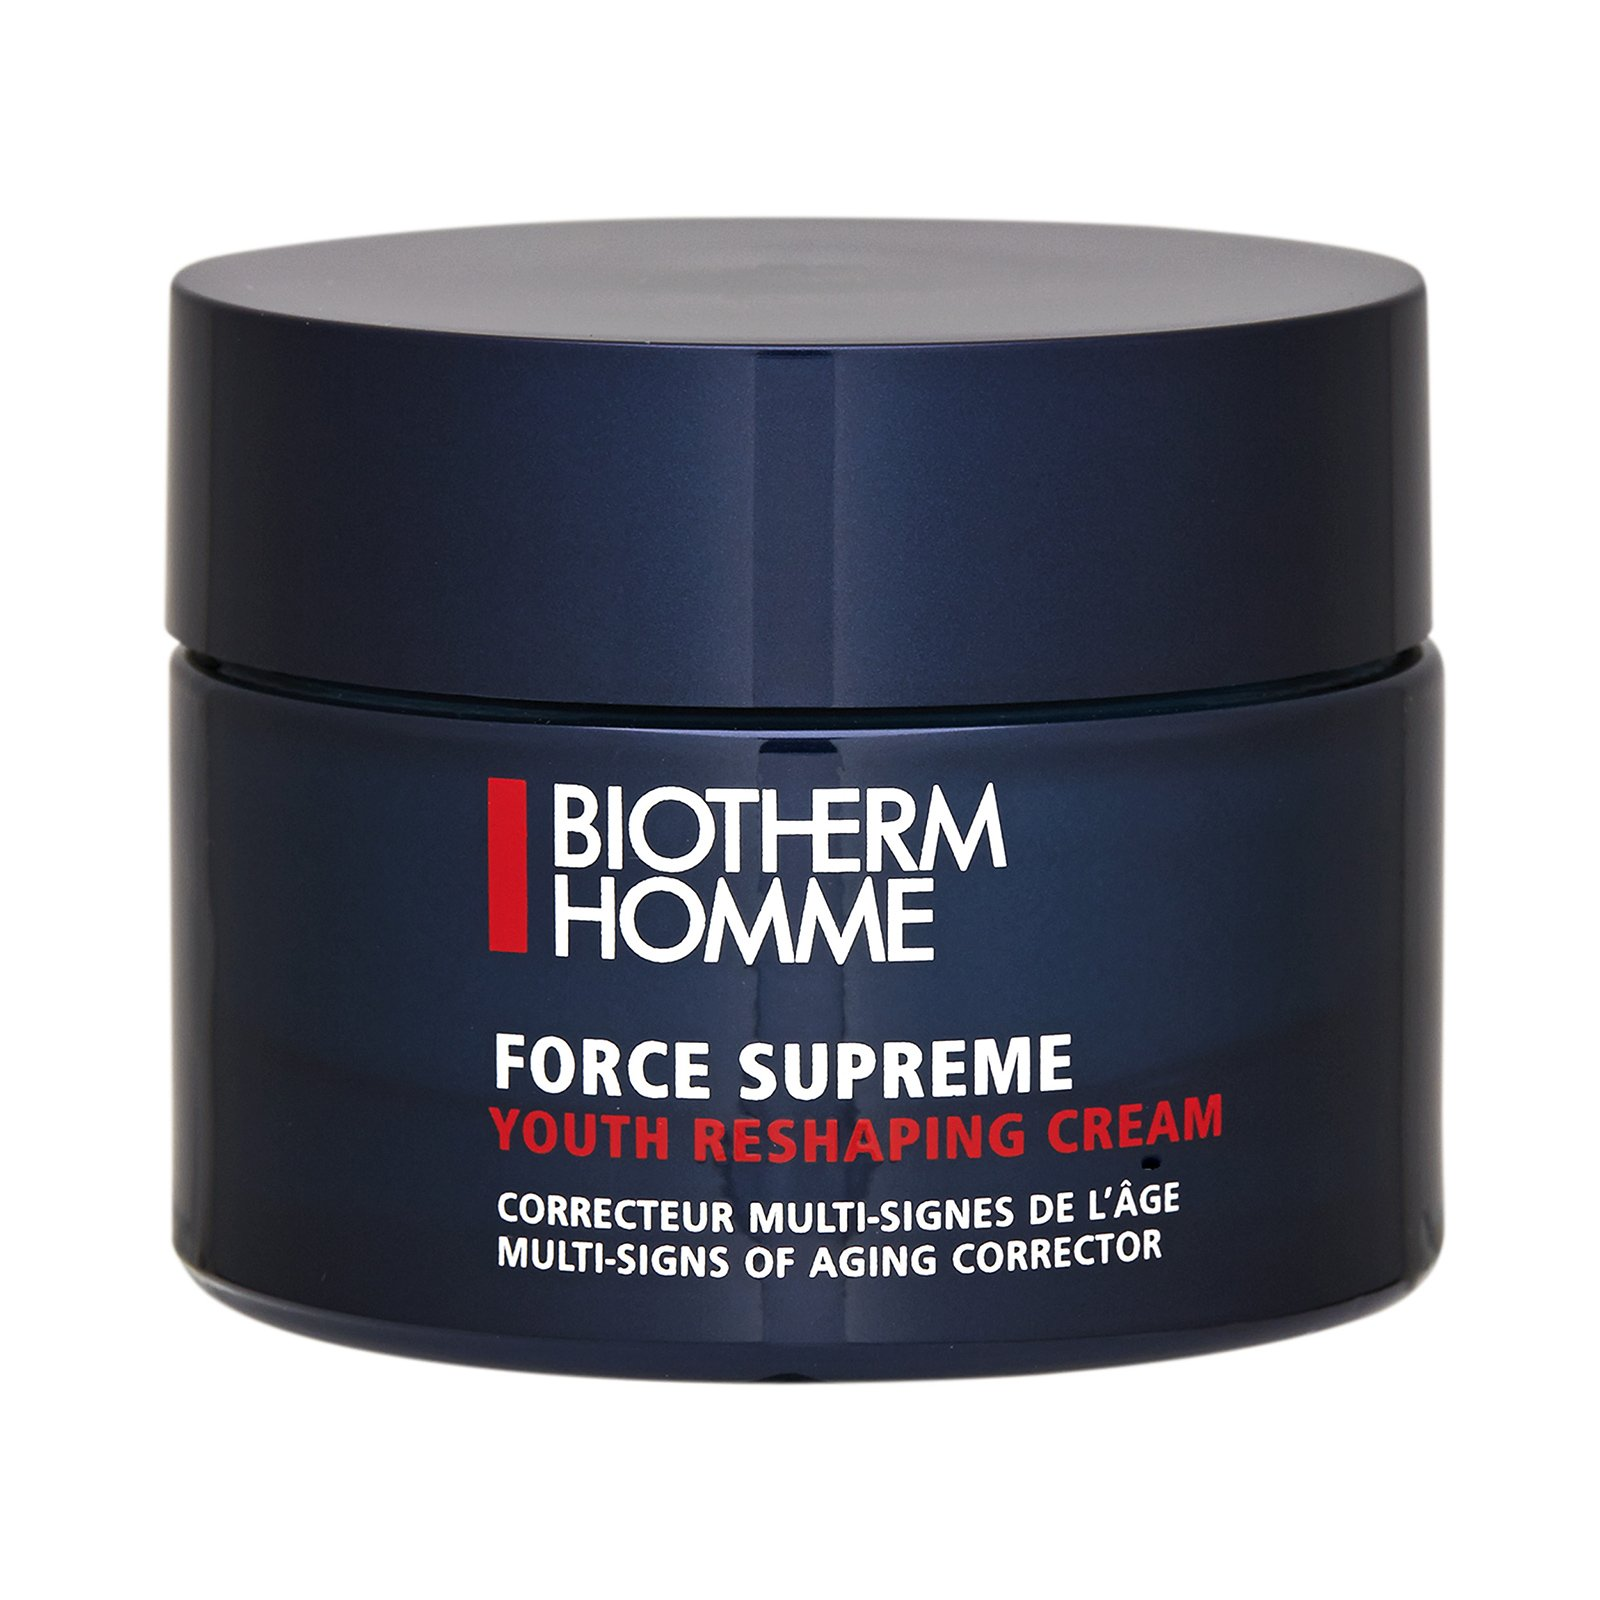 Biotherm Homme Force Supreme Youth Reshaping Cream 1.69oz, 50ml from Cosme-De.com